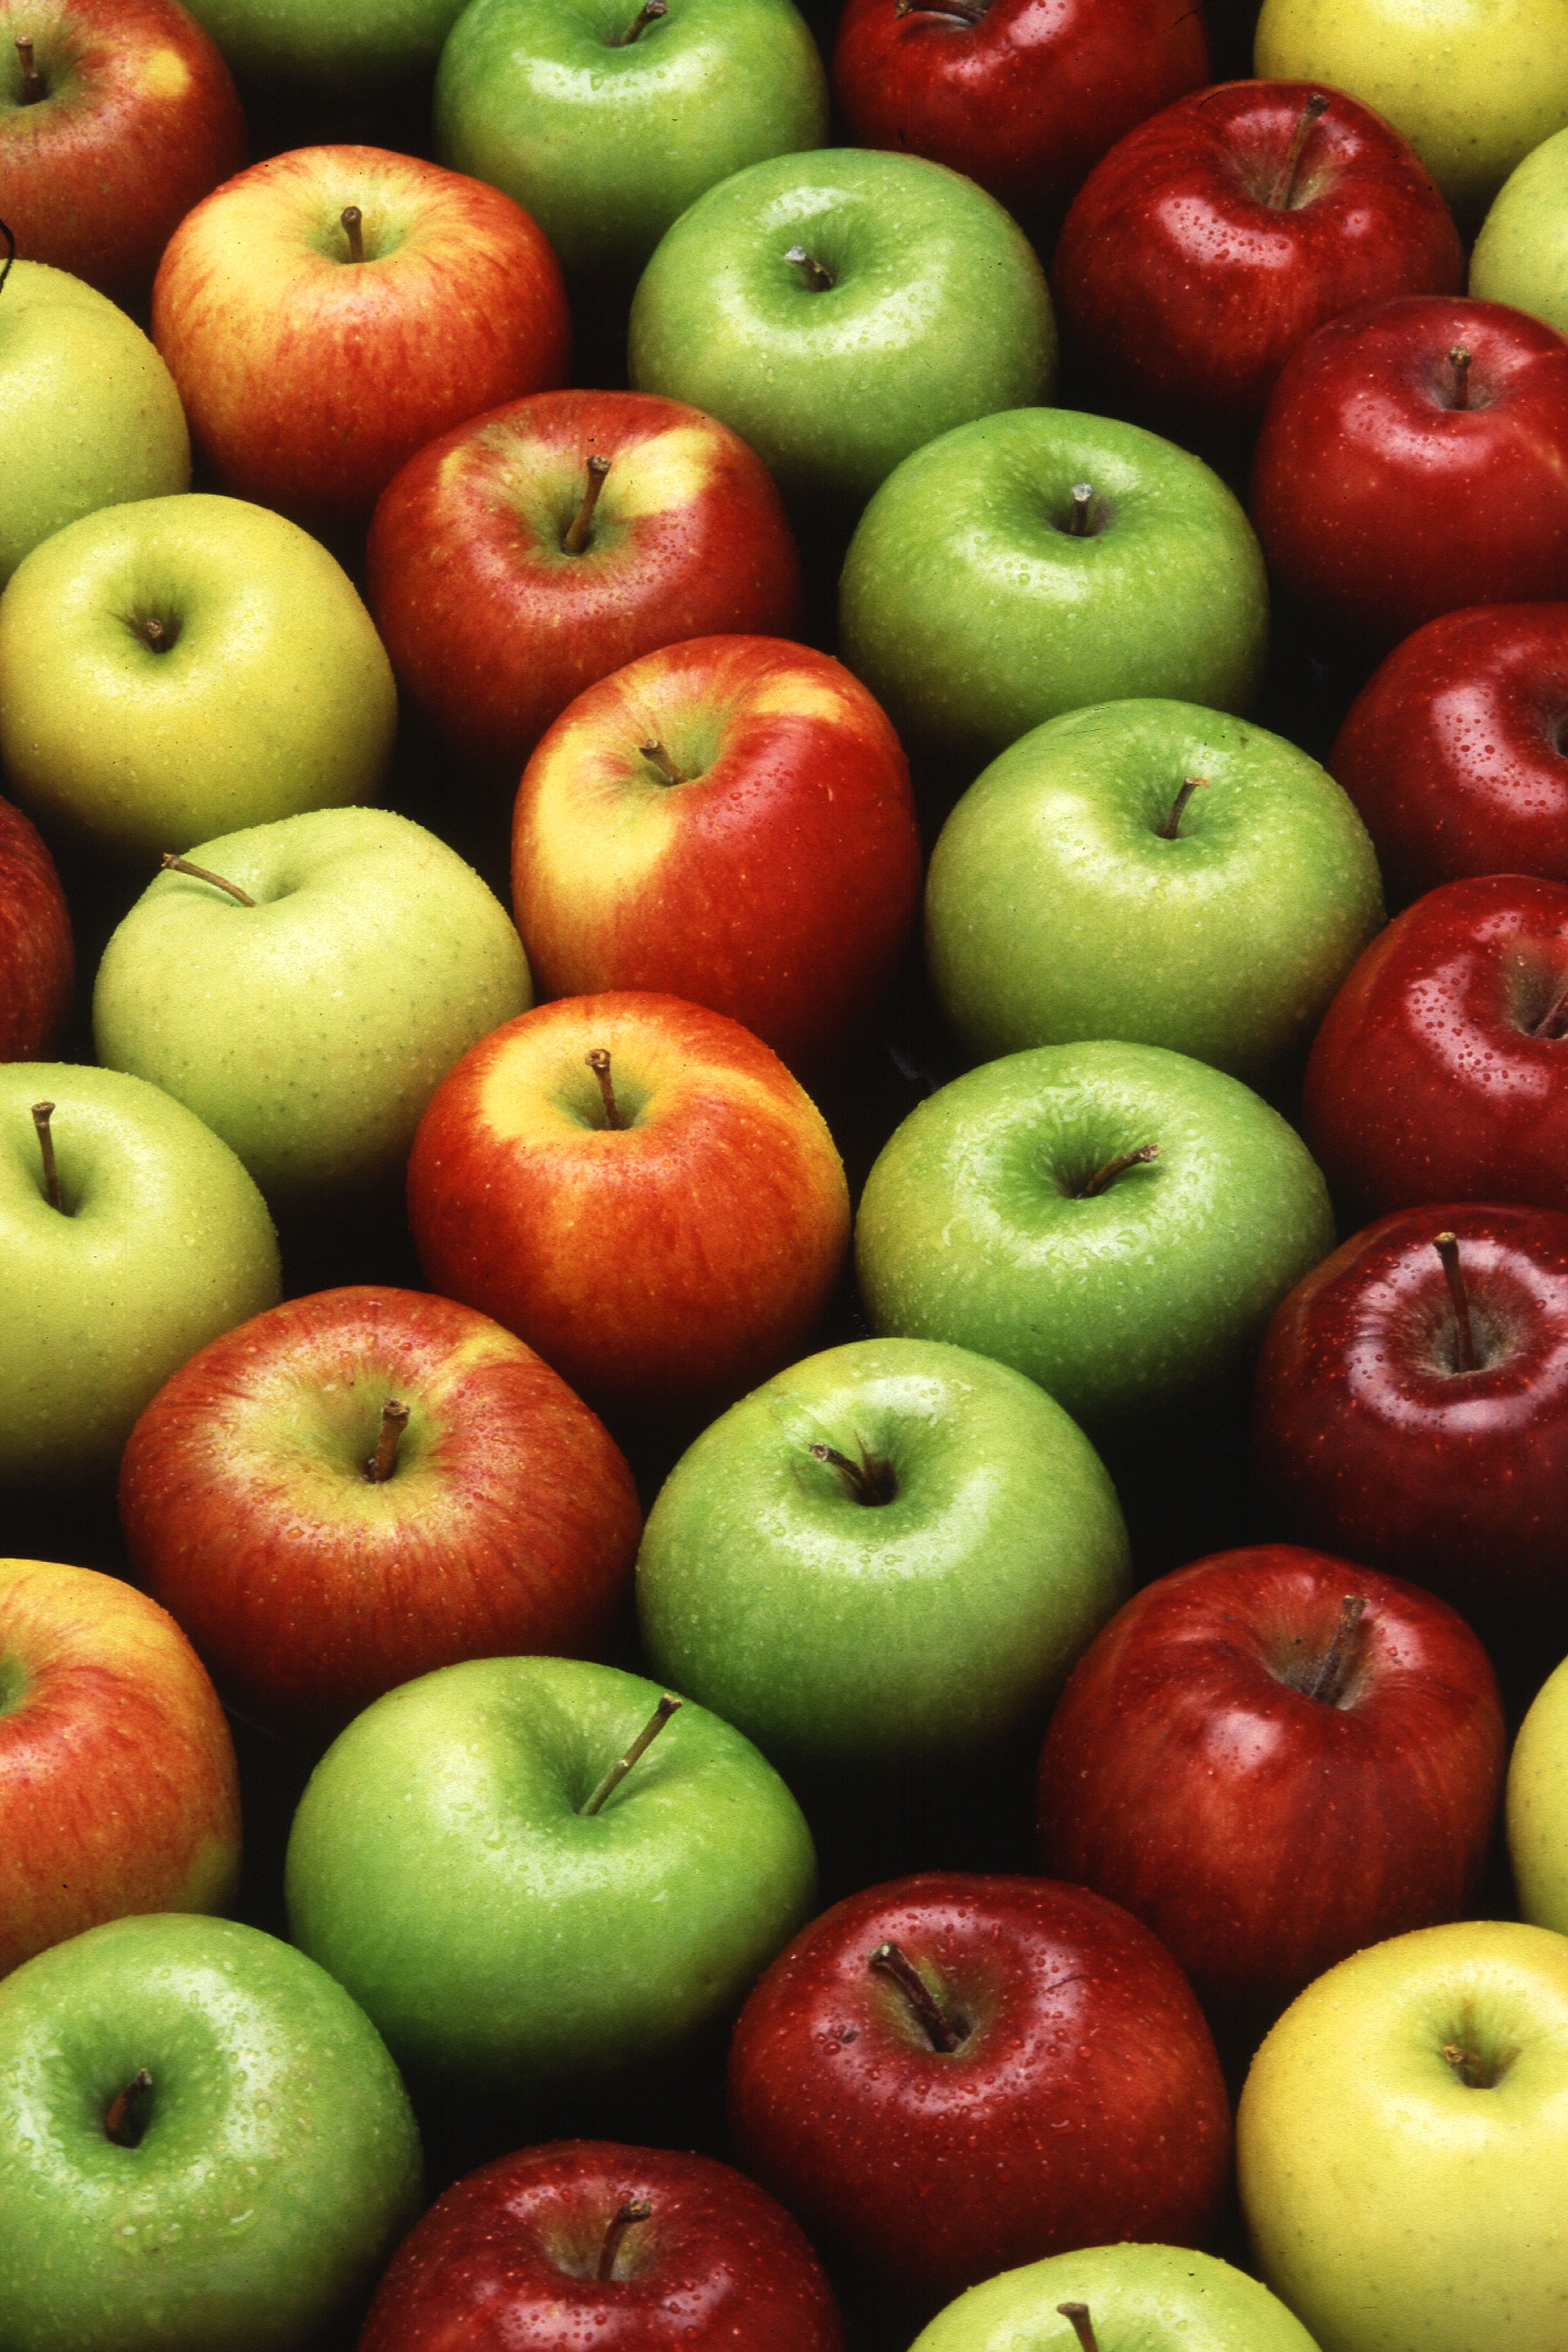 Apples are a cultivated fruit with many color coded varieties.